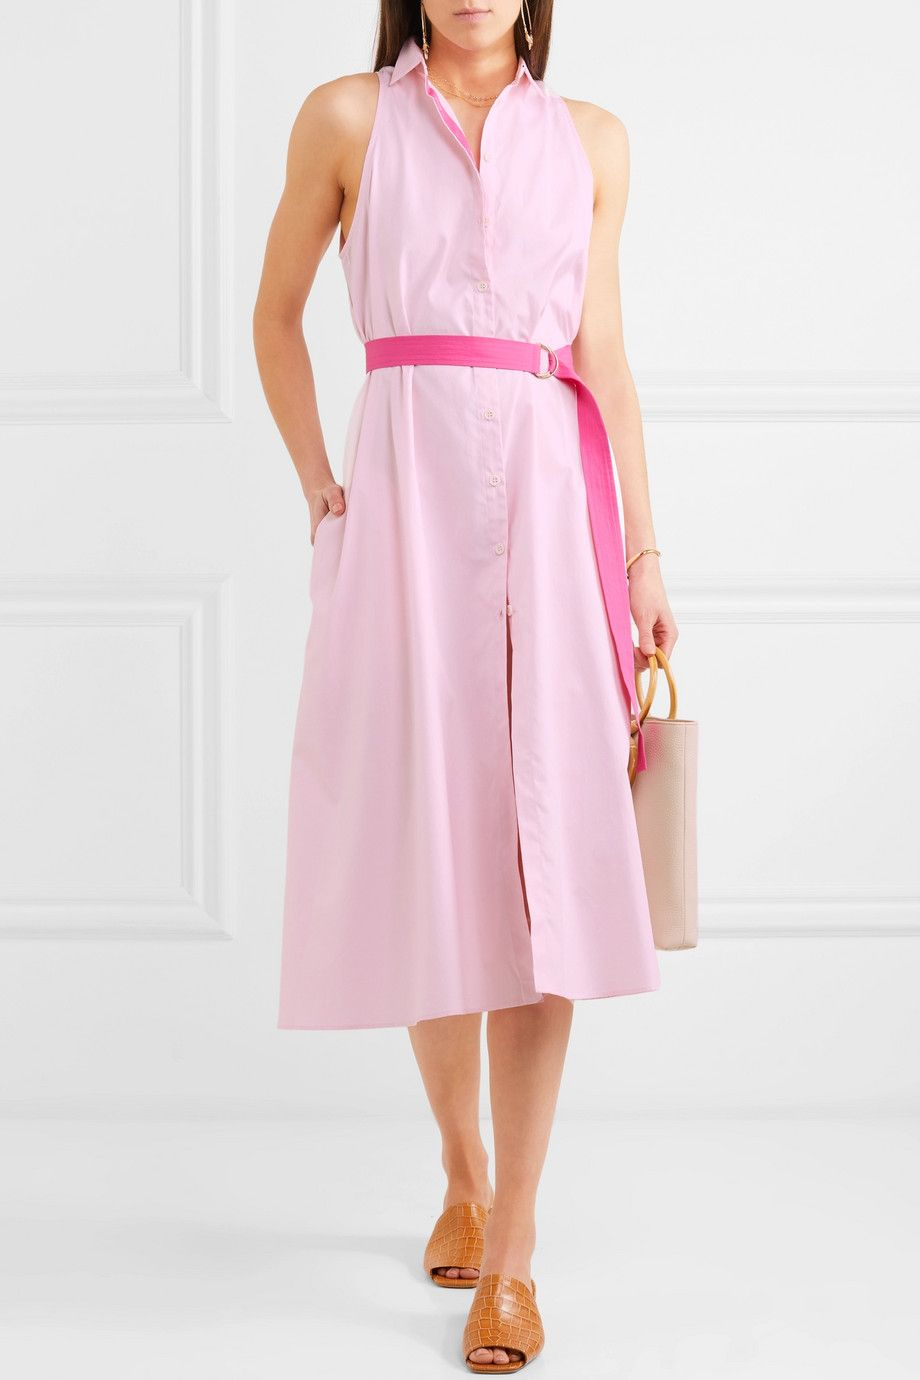 Belted Cotton-poplin Shirt Dress - Pink MDS Stripes With Mastercard Cheap Price Cheap Real Eastbay Discount Low Price Fee Shipping vWydhHix5